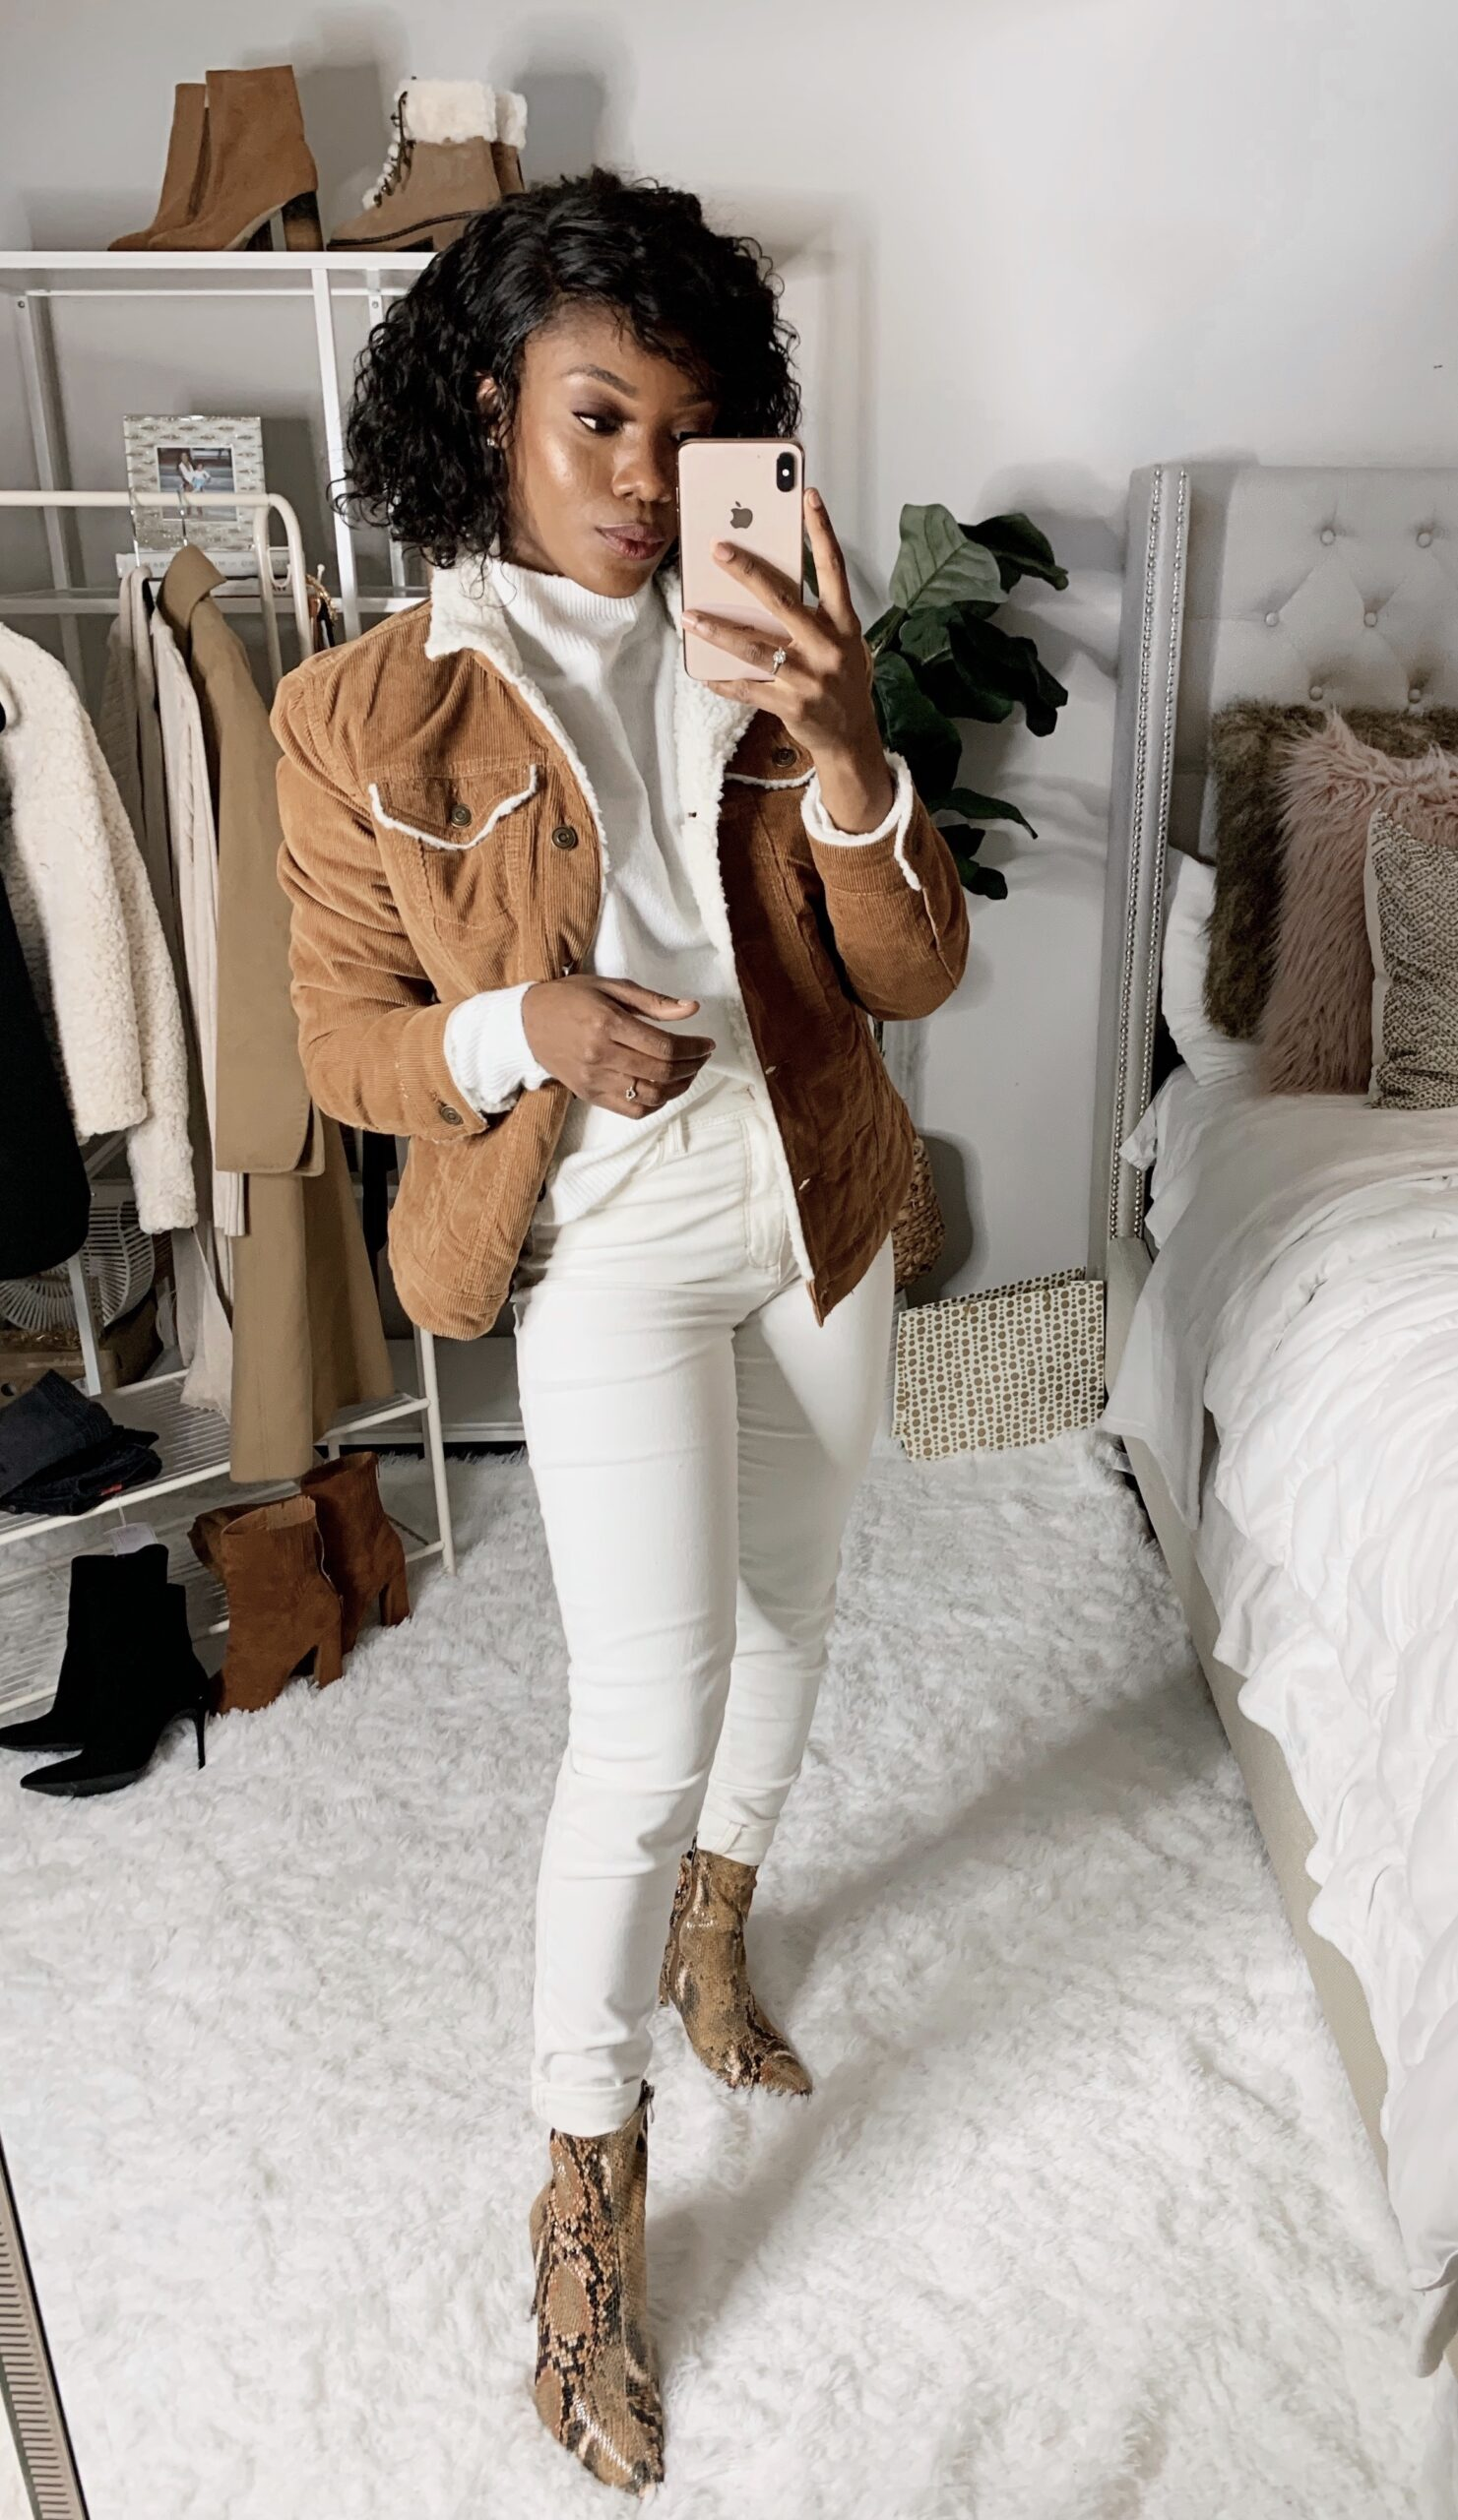 Bougie on a budget. The perfect way to look at Spencer without breaking the bank, all white went to look